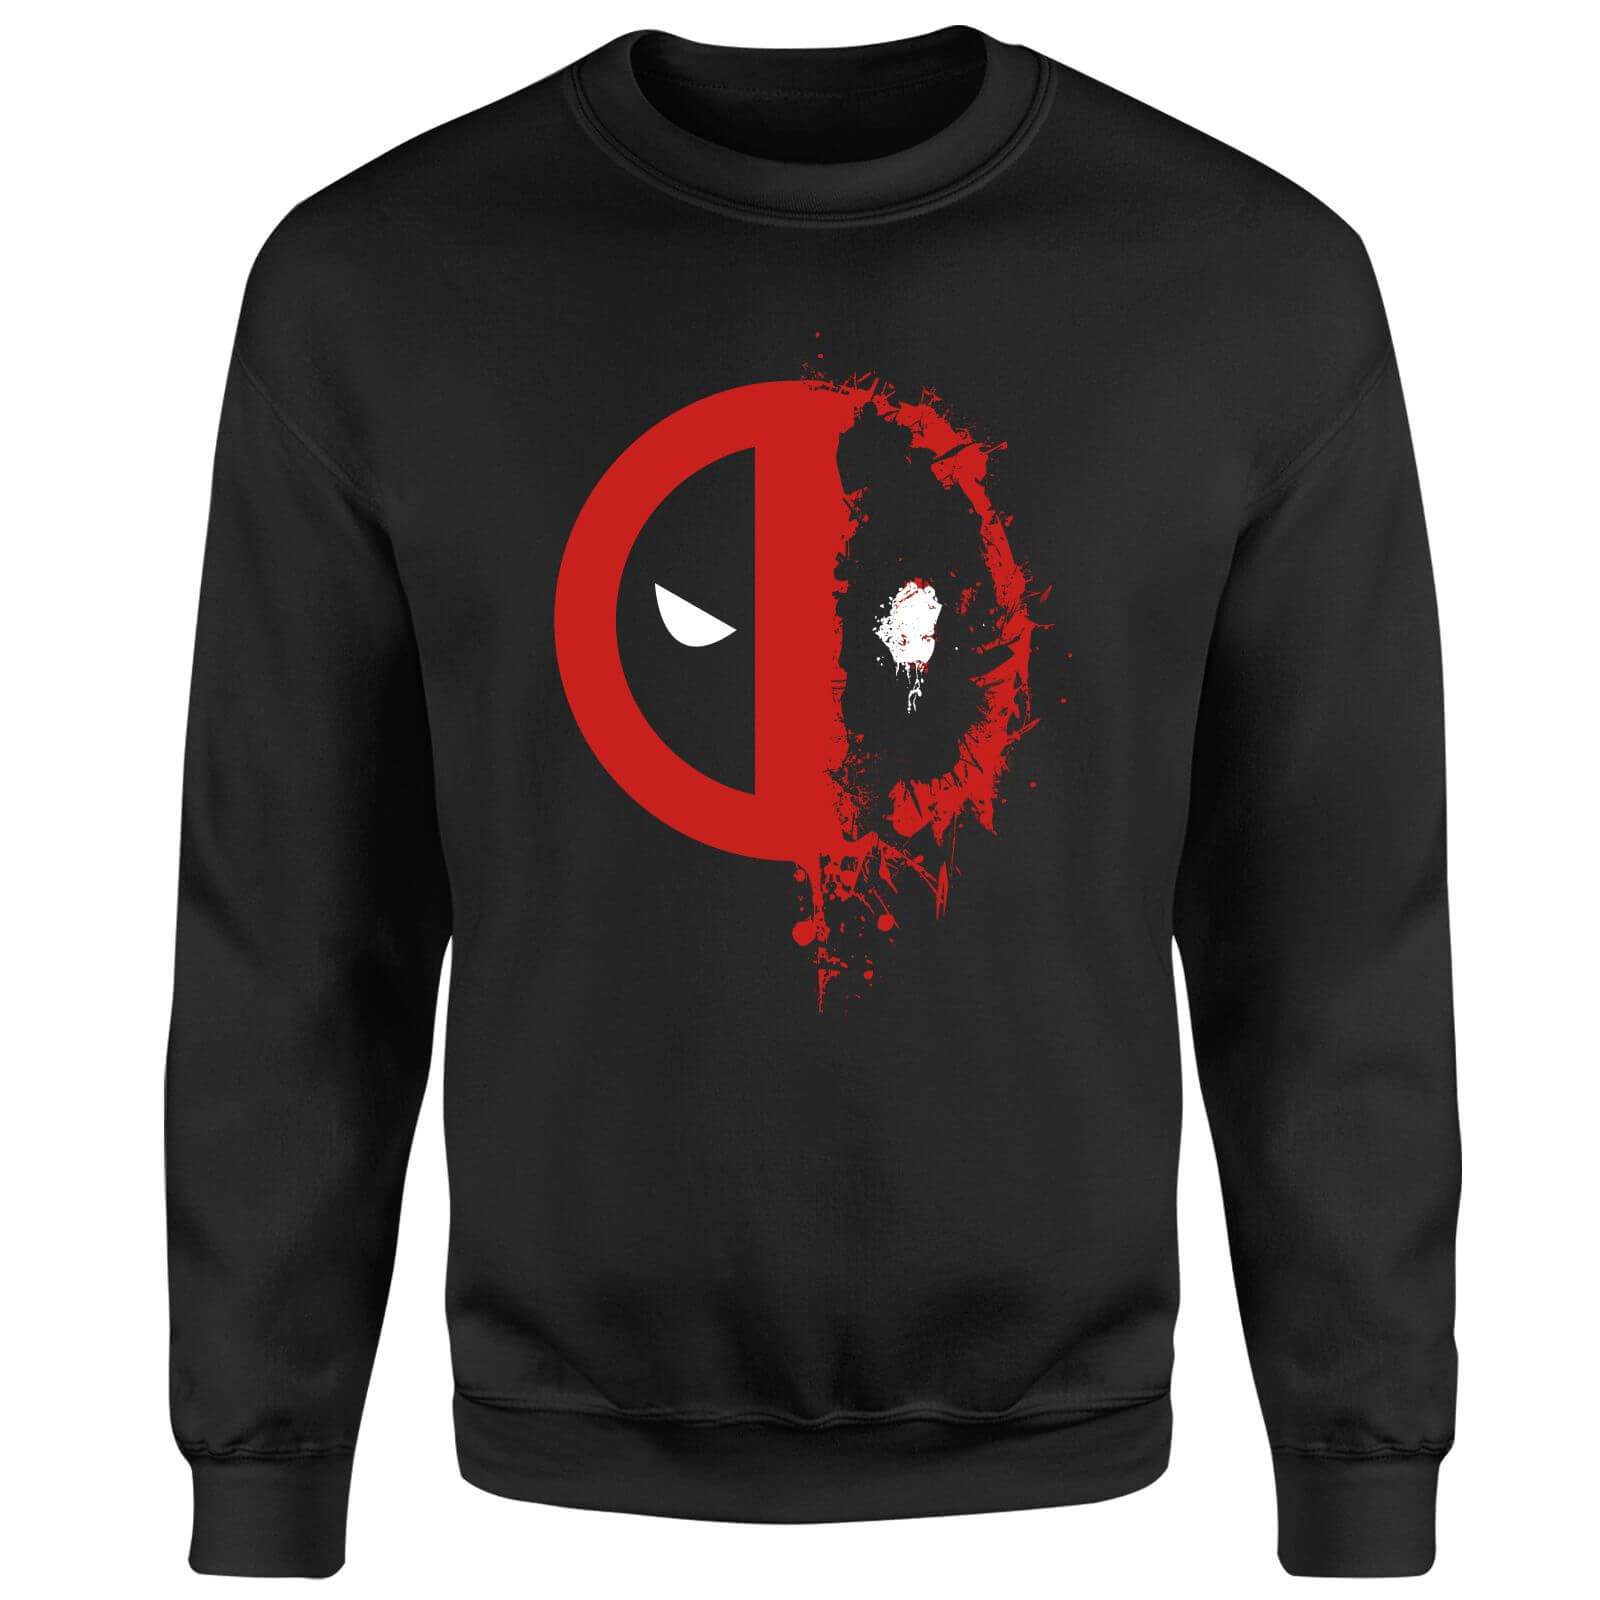 Marvel Deadpool Split Splat Logo Sweatshirt - Black